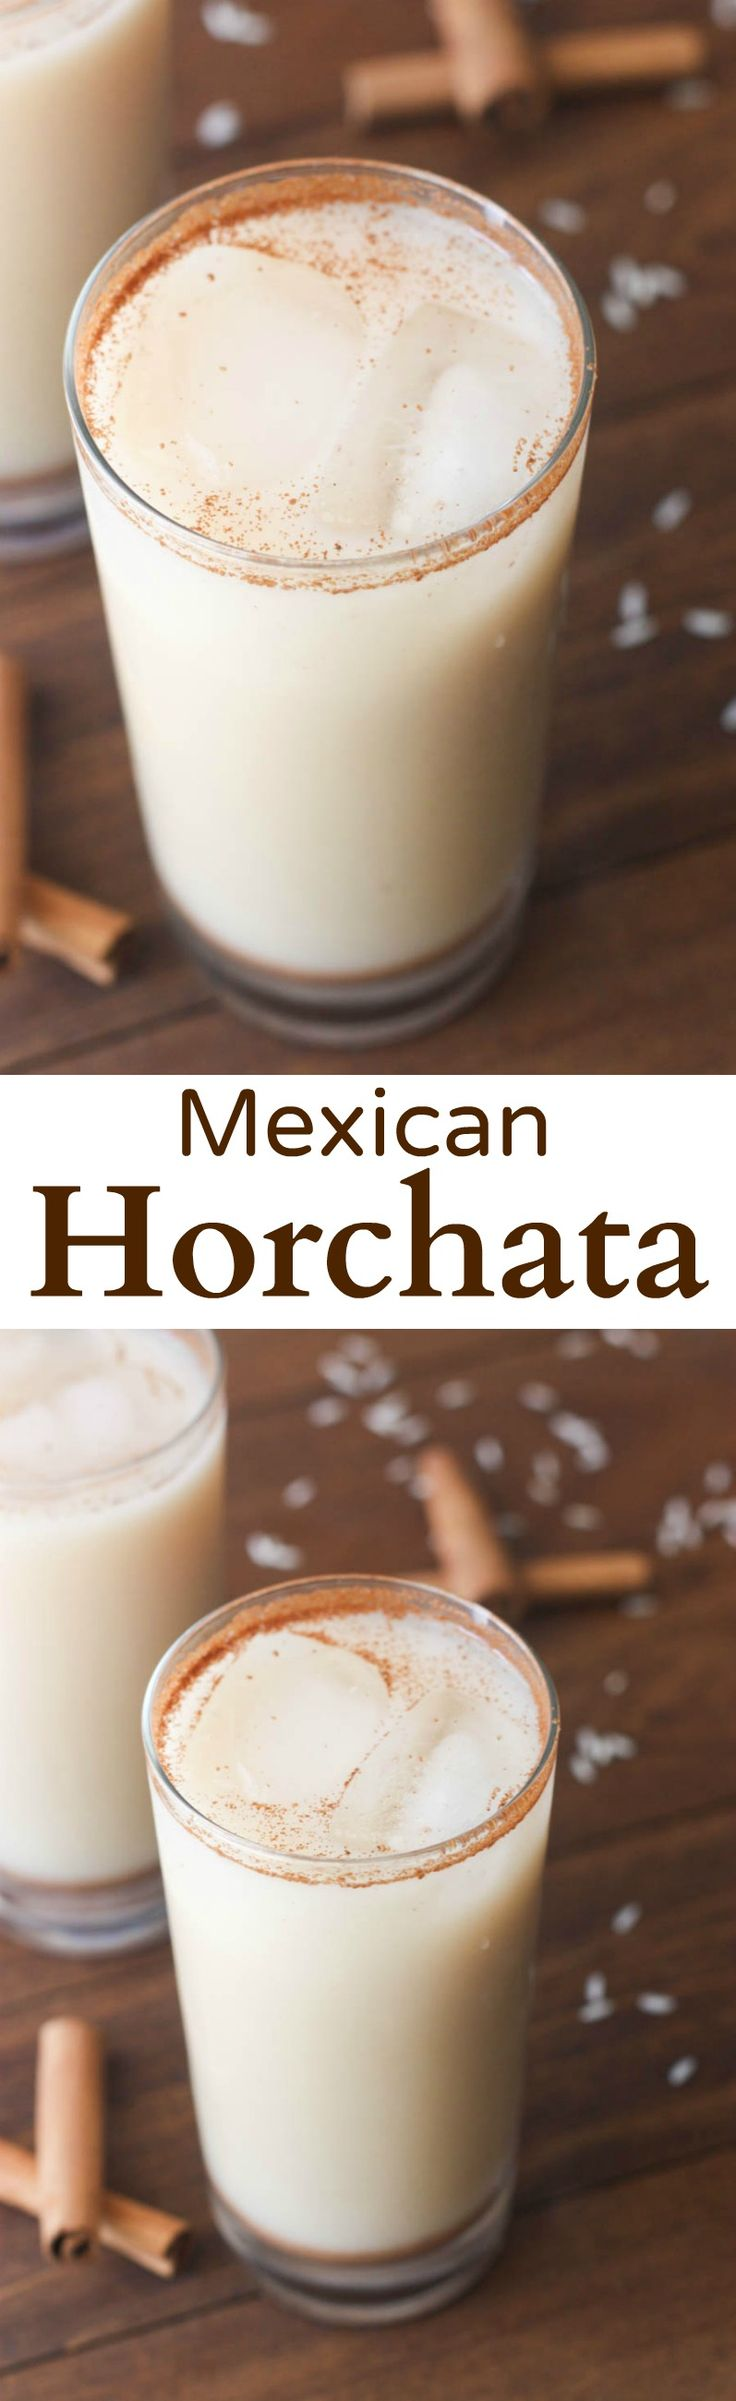 The easiest, creamy and slightly sweet homemade Authentic Mexican Horchata.  It's almost Cinco de Mayo guys!  A good excuse to throw a party with your friends and make some awesome homemade Mexican food! I'll be making several of my favorite Mexican dishes, particularly Authentic Mexican Rice and Cantina-Style Salsa. I've found that my way of …